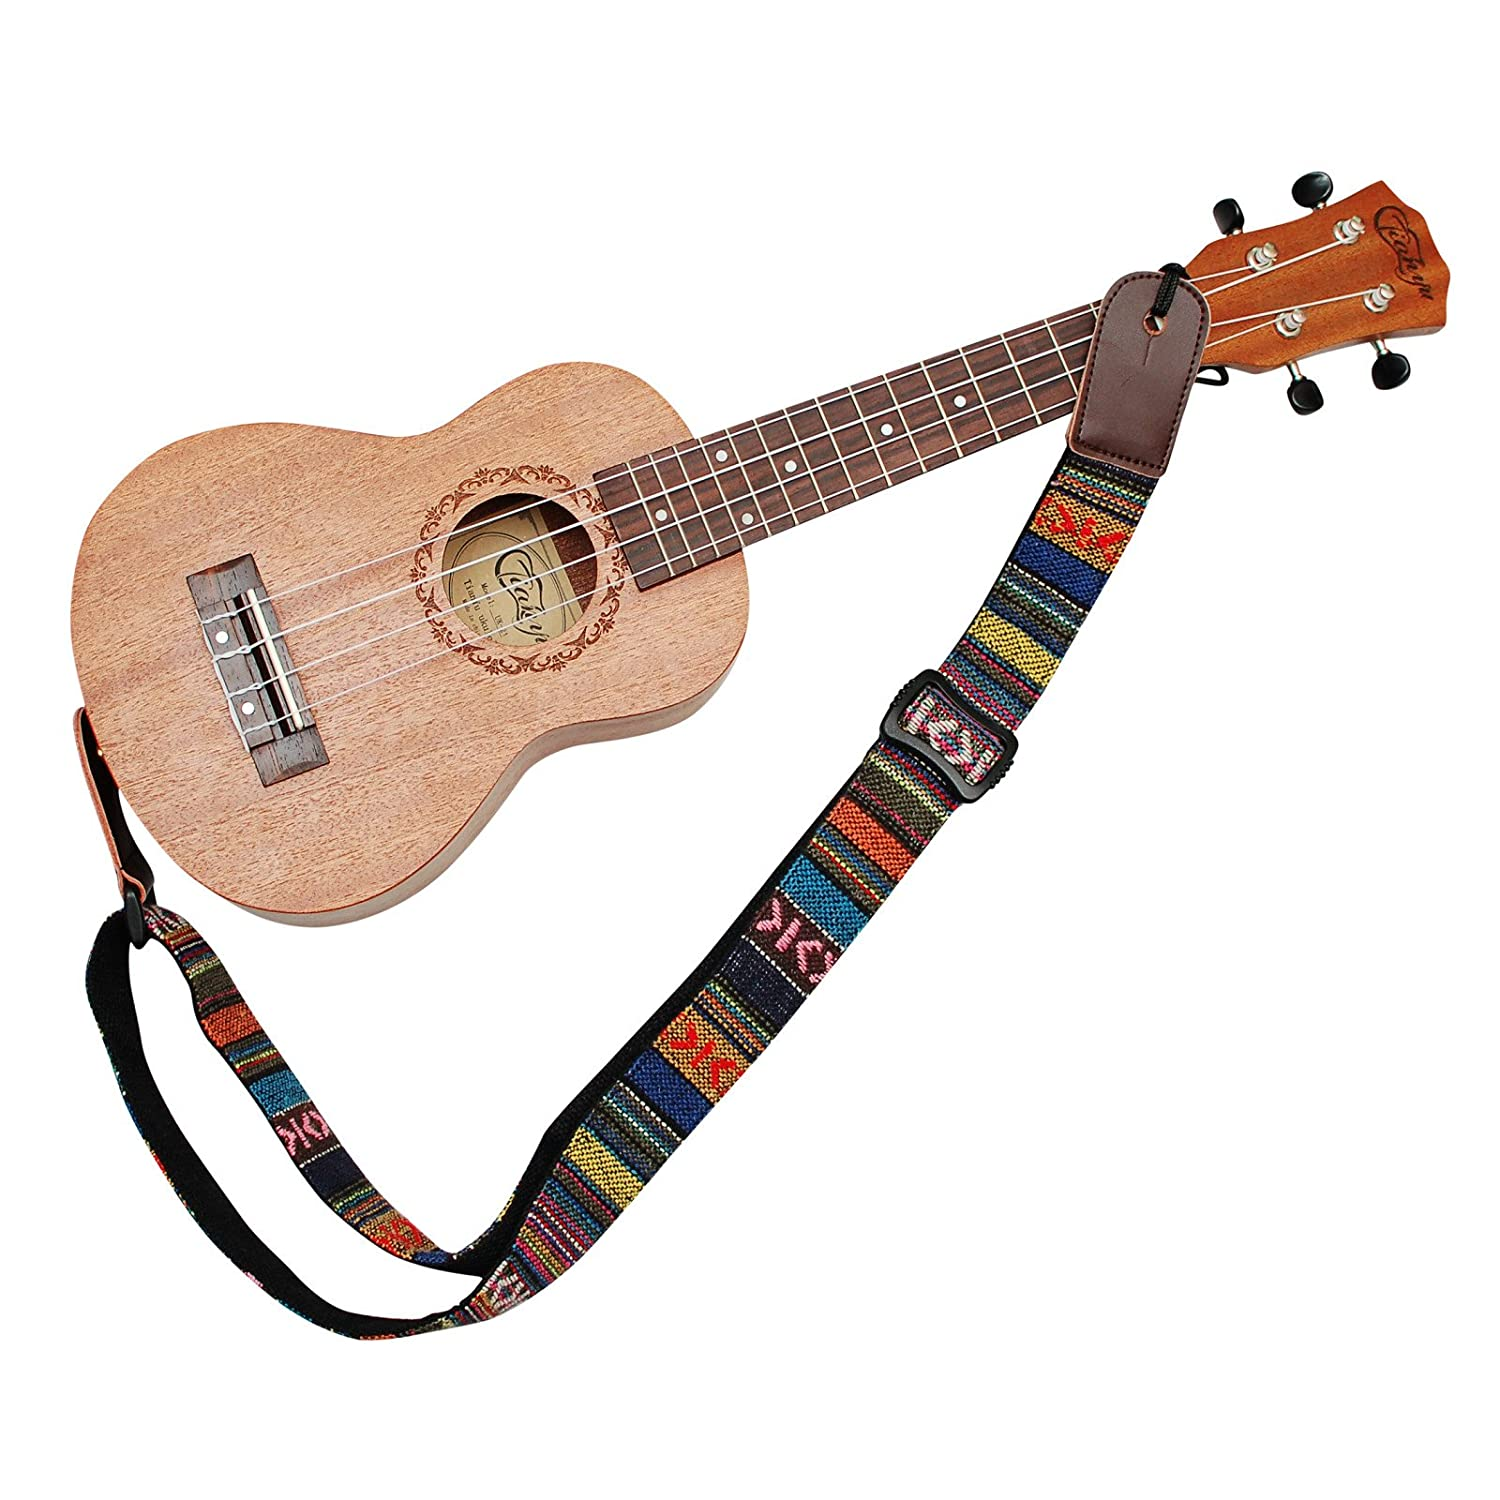 MUSIC FIRST Classic Country style Soft Cotton & Genuine Leather Ukulele Strap Ukulele Shoulder Strap Version 2.0 WSDM-U-STP018